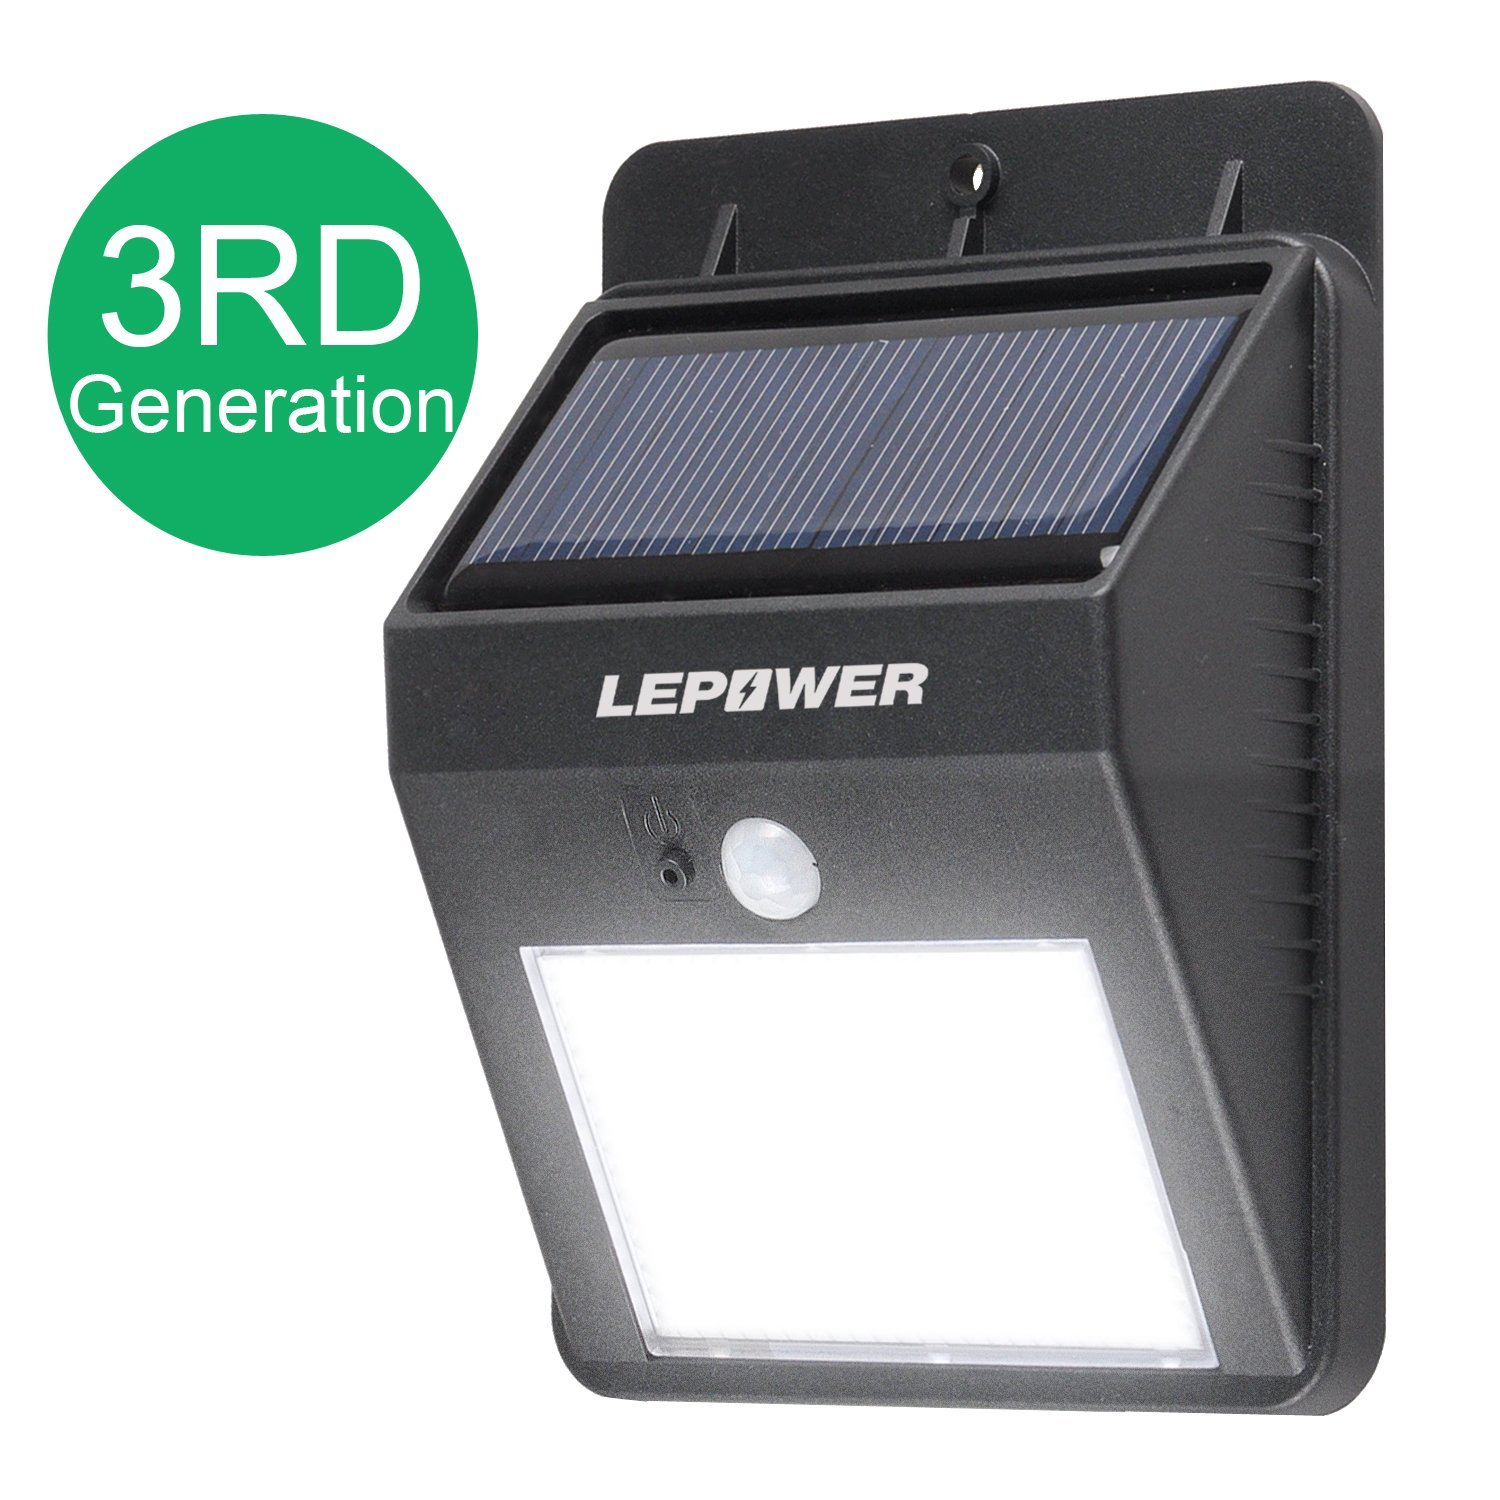 LEPower Light  sc 1 st  Urban Turnip & Five Best Solar Powered Garden Lights for 2017: Our Reviews and ...